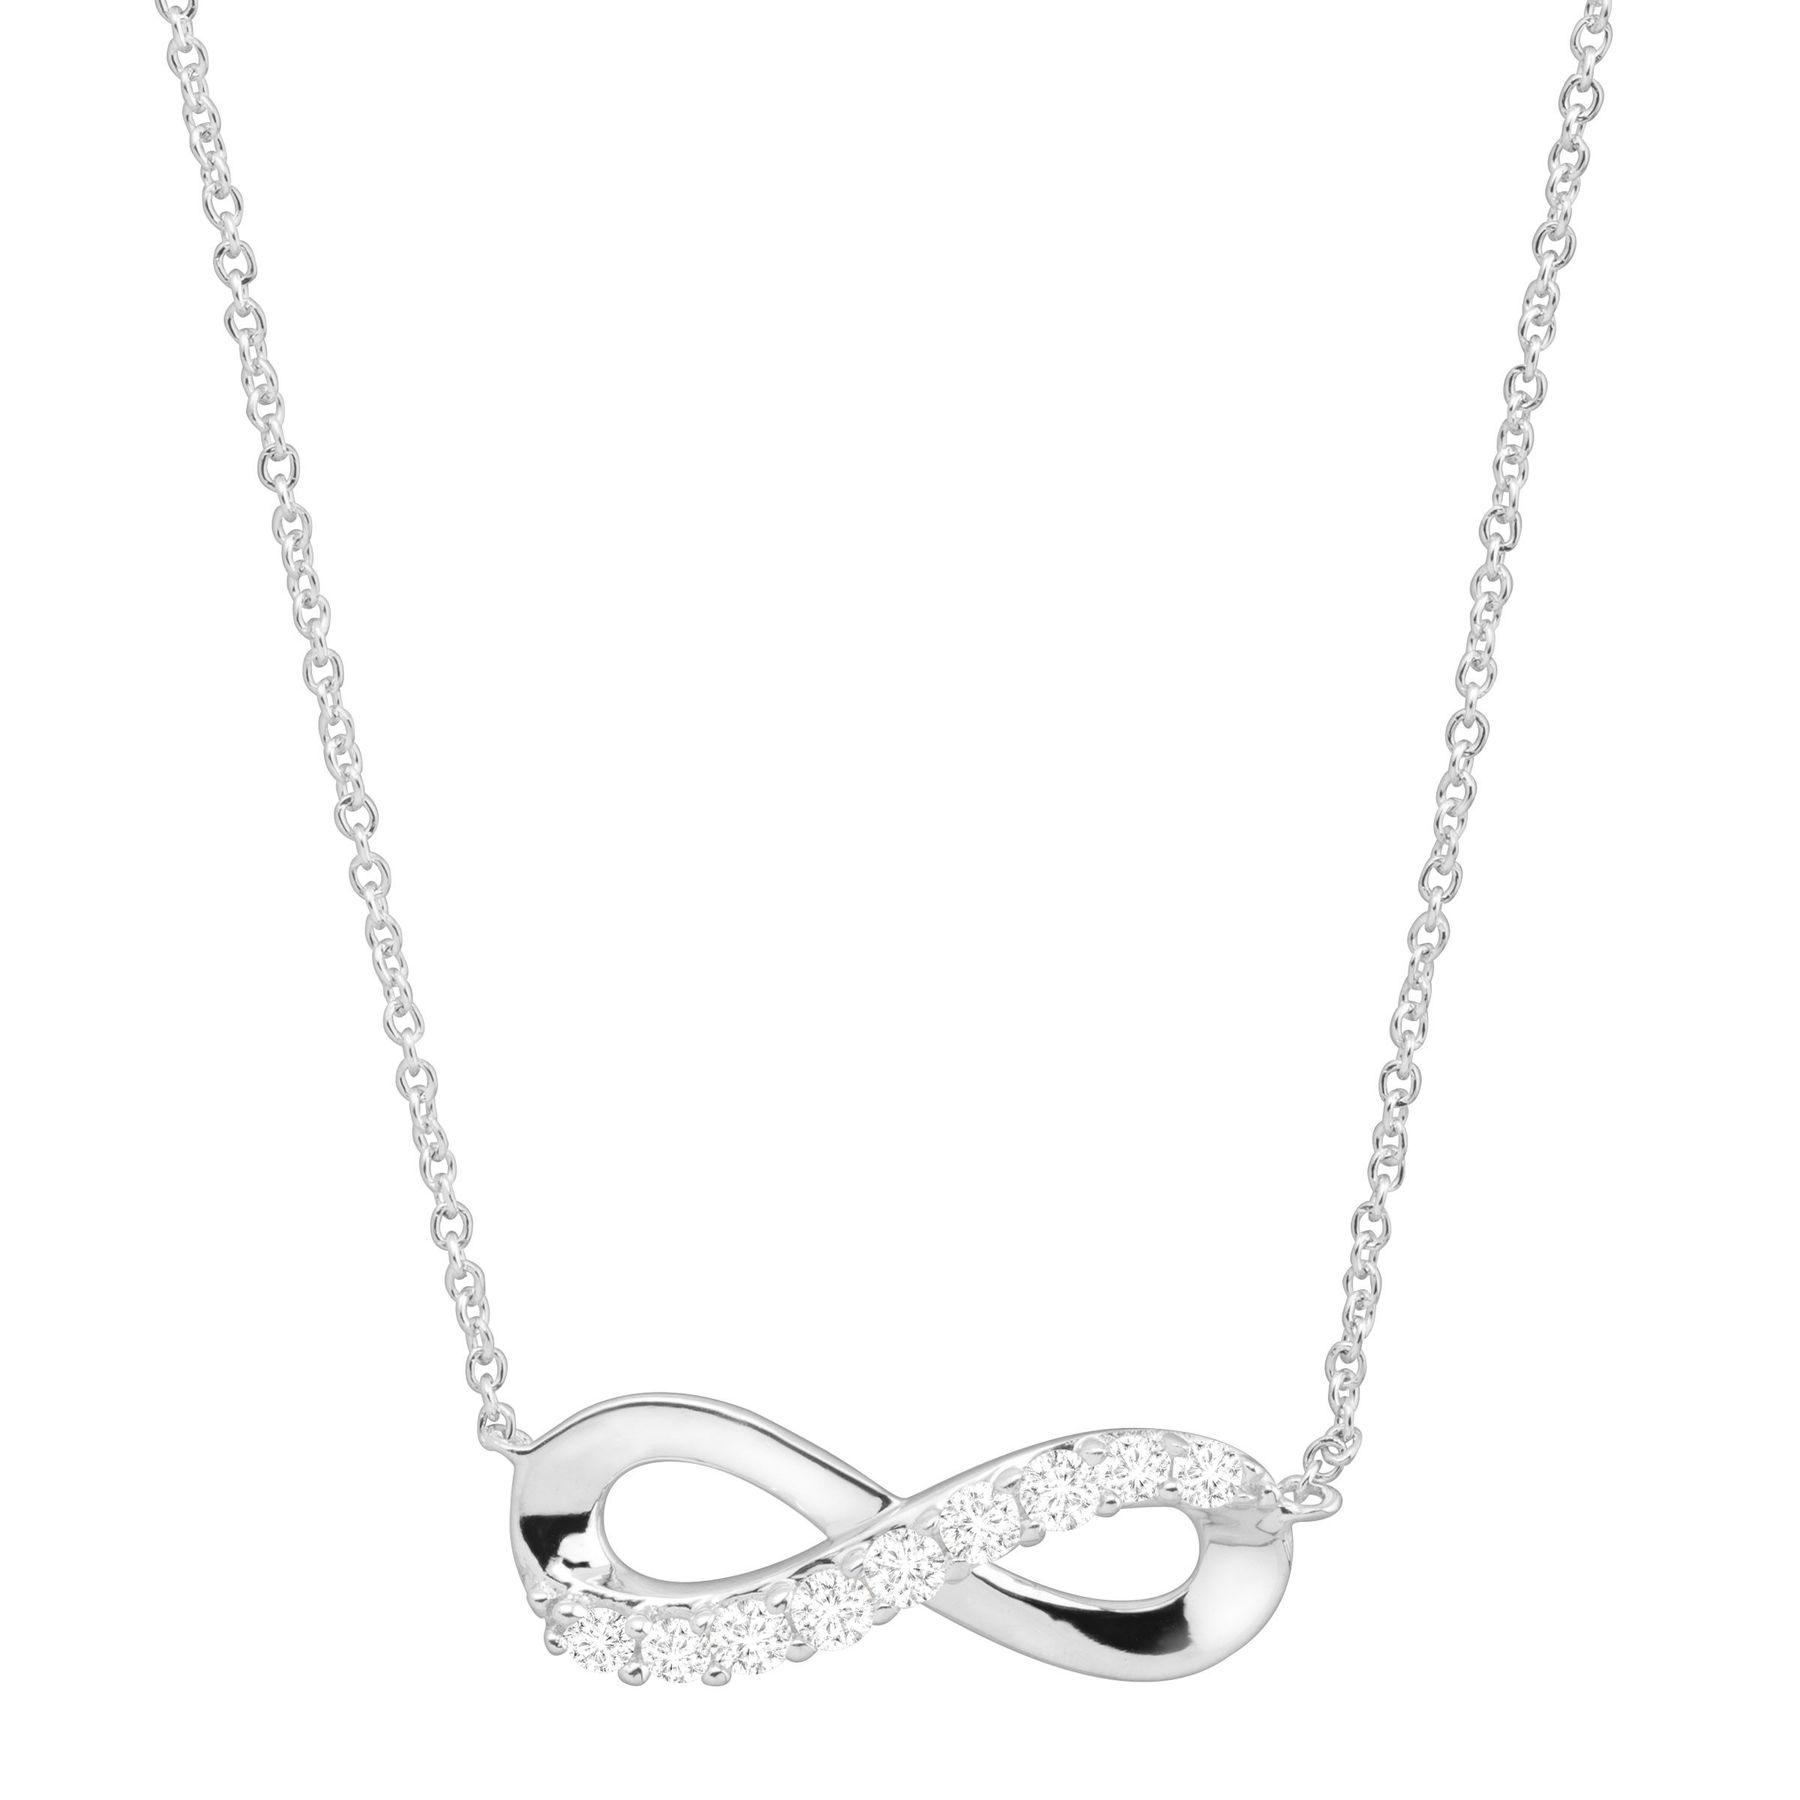 Infinity Symbol Necklace With Cubic Zirconia In Sterling Silver